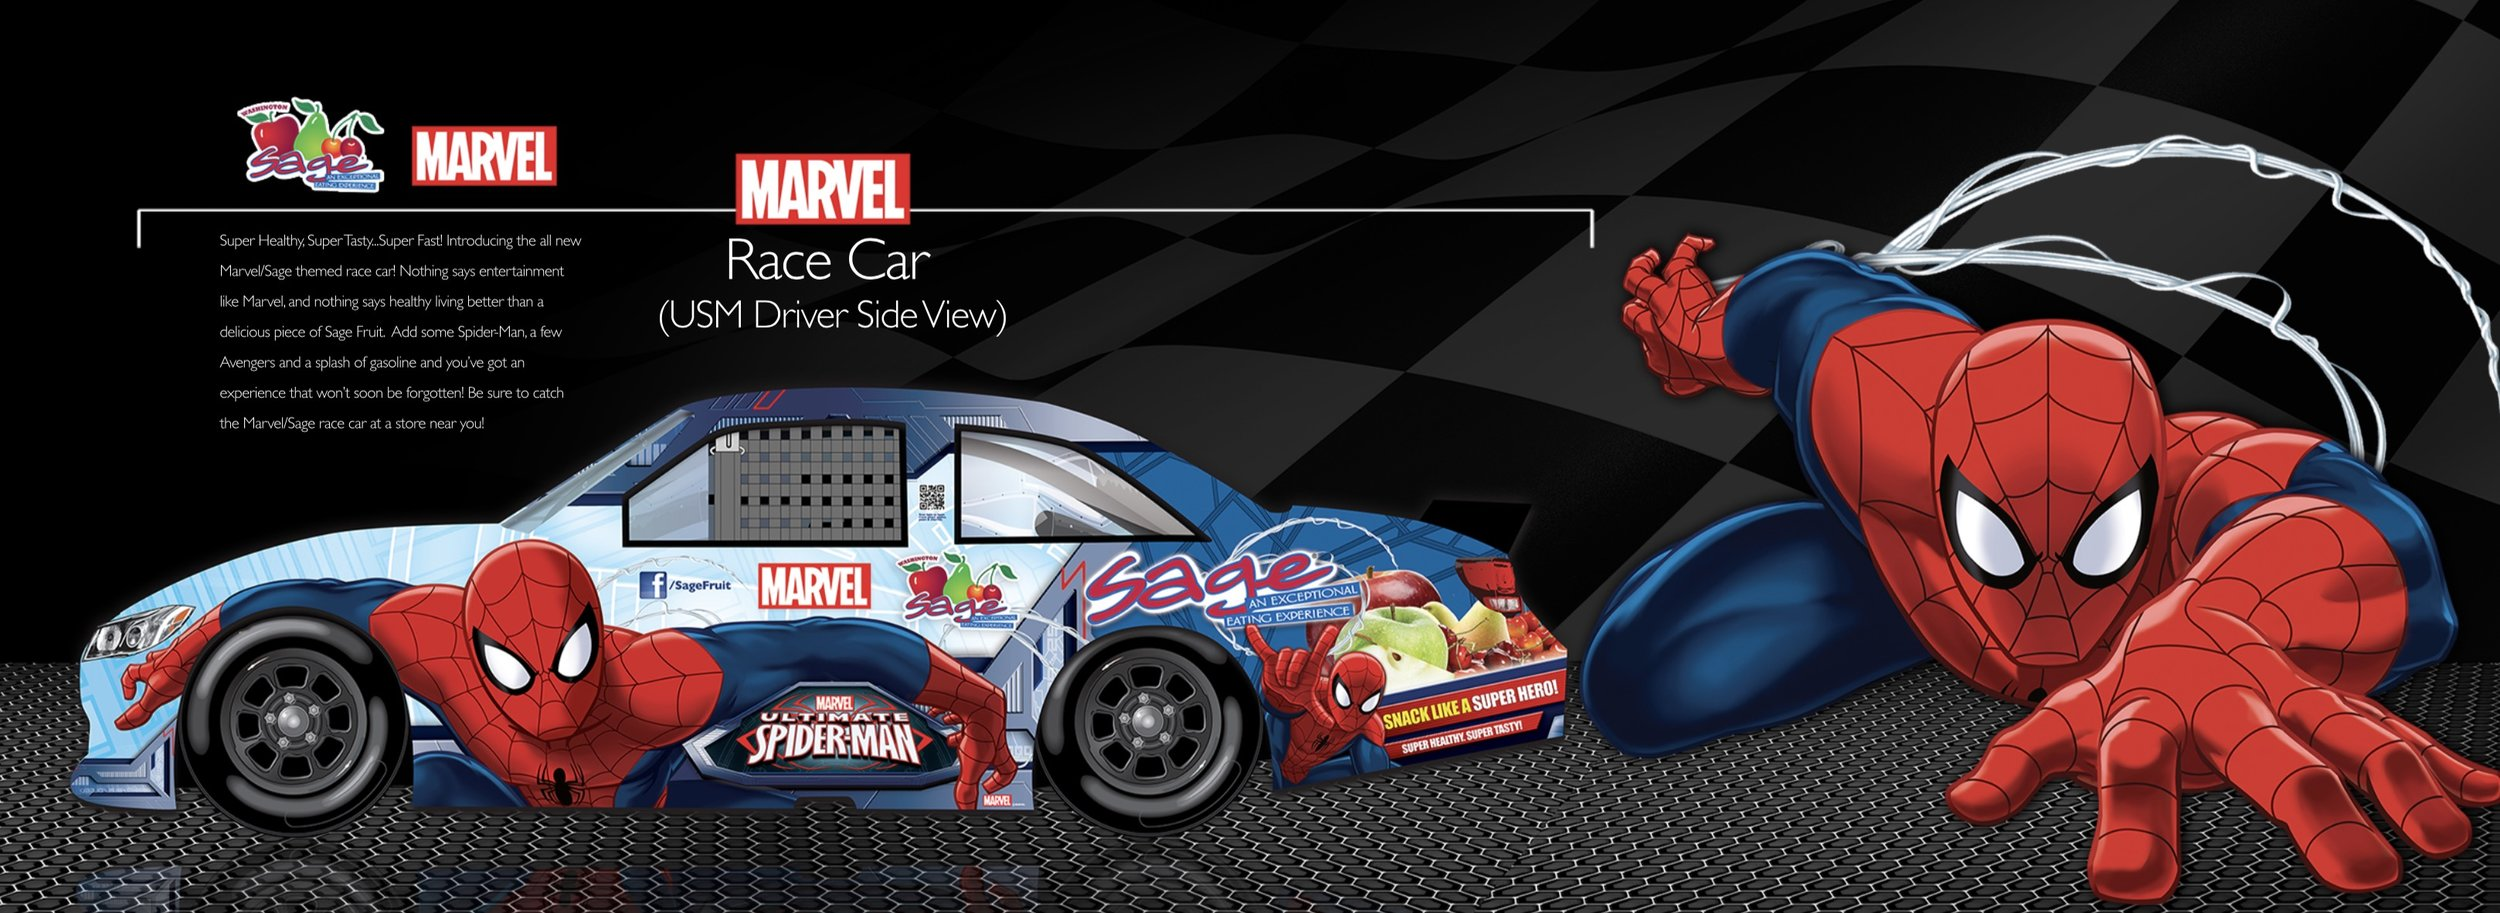 Spiderman vehicle wrap designed in collaboration with Sage Fruit and Disney/Marvel.